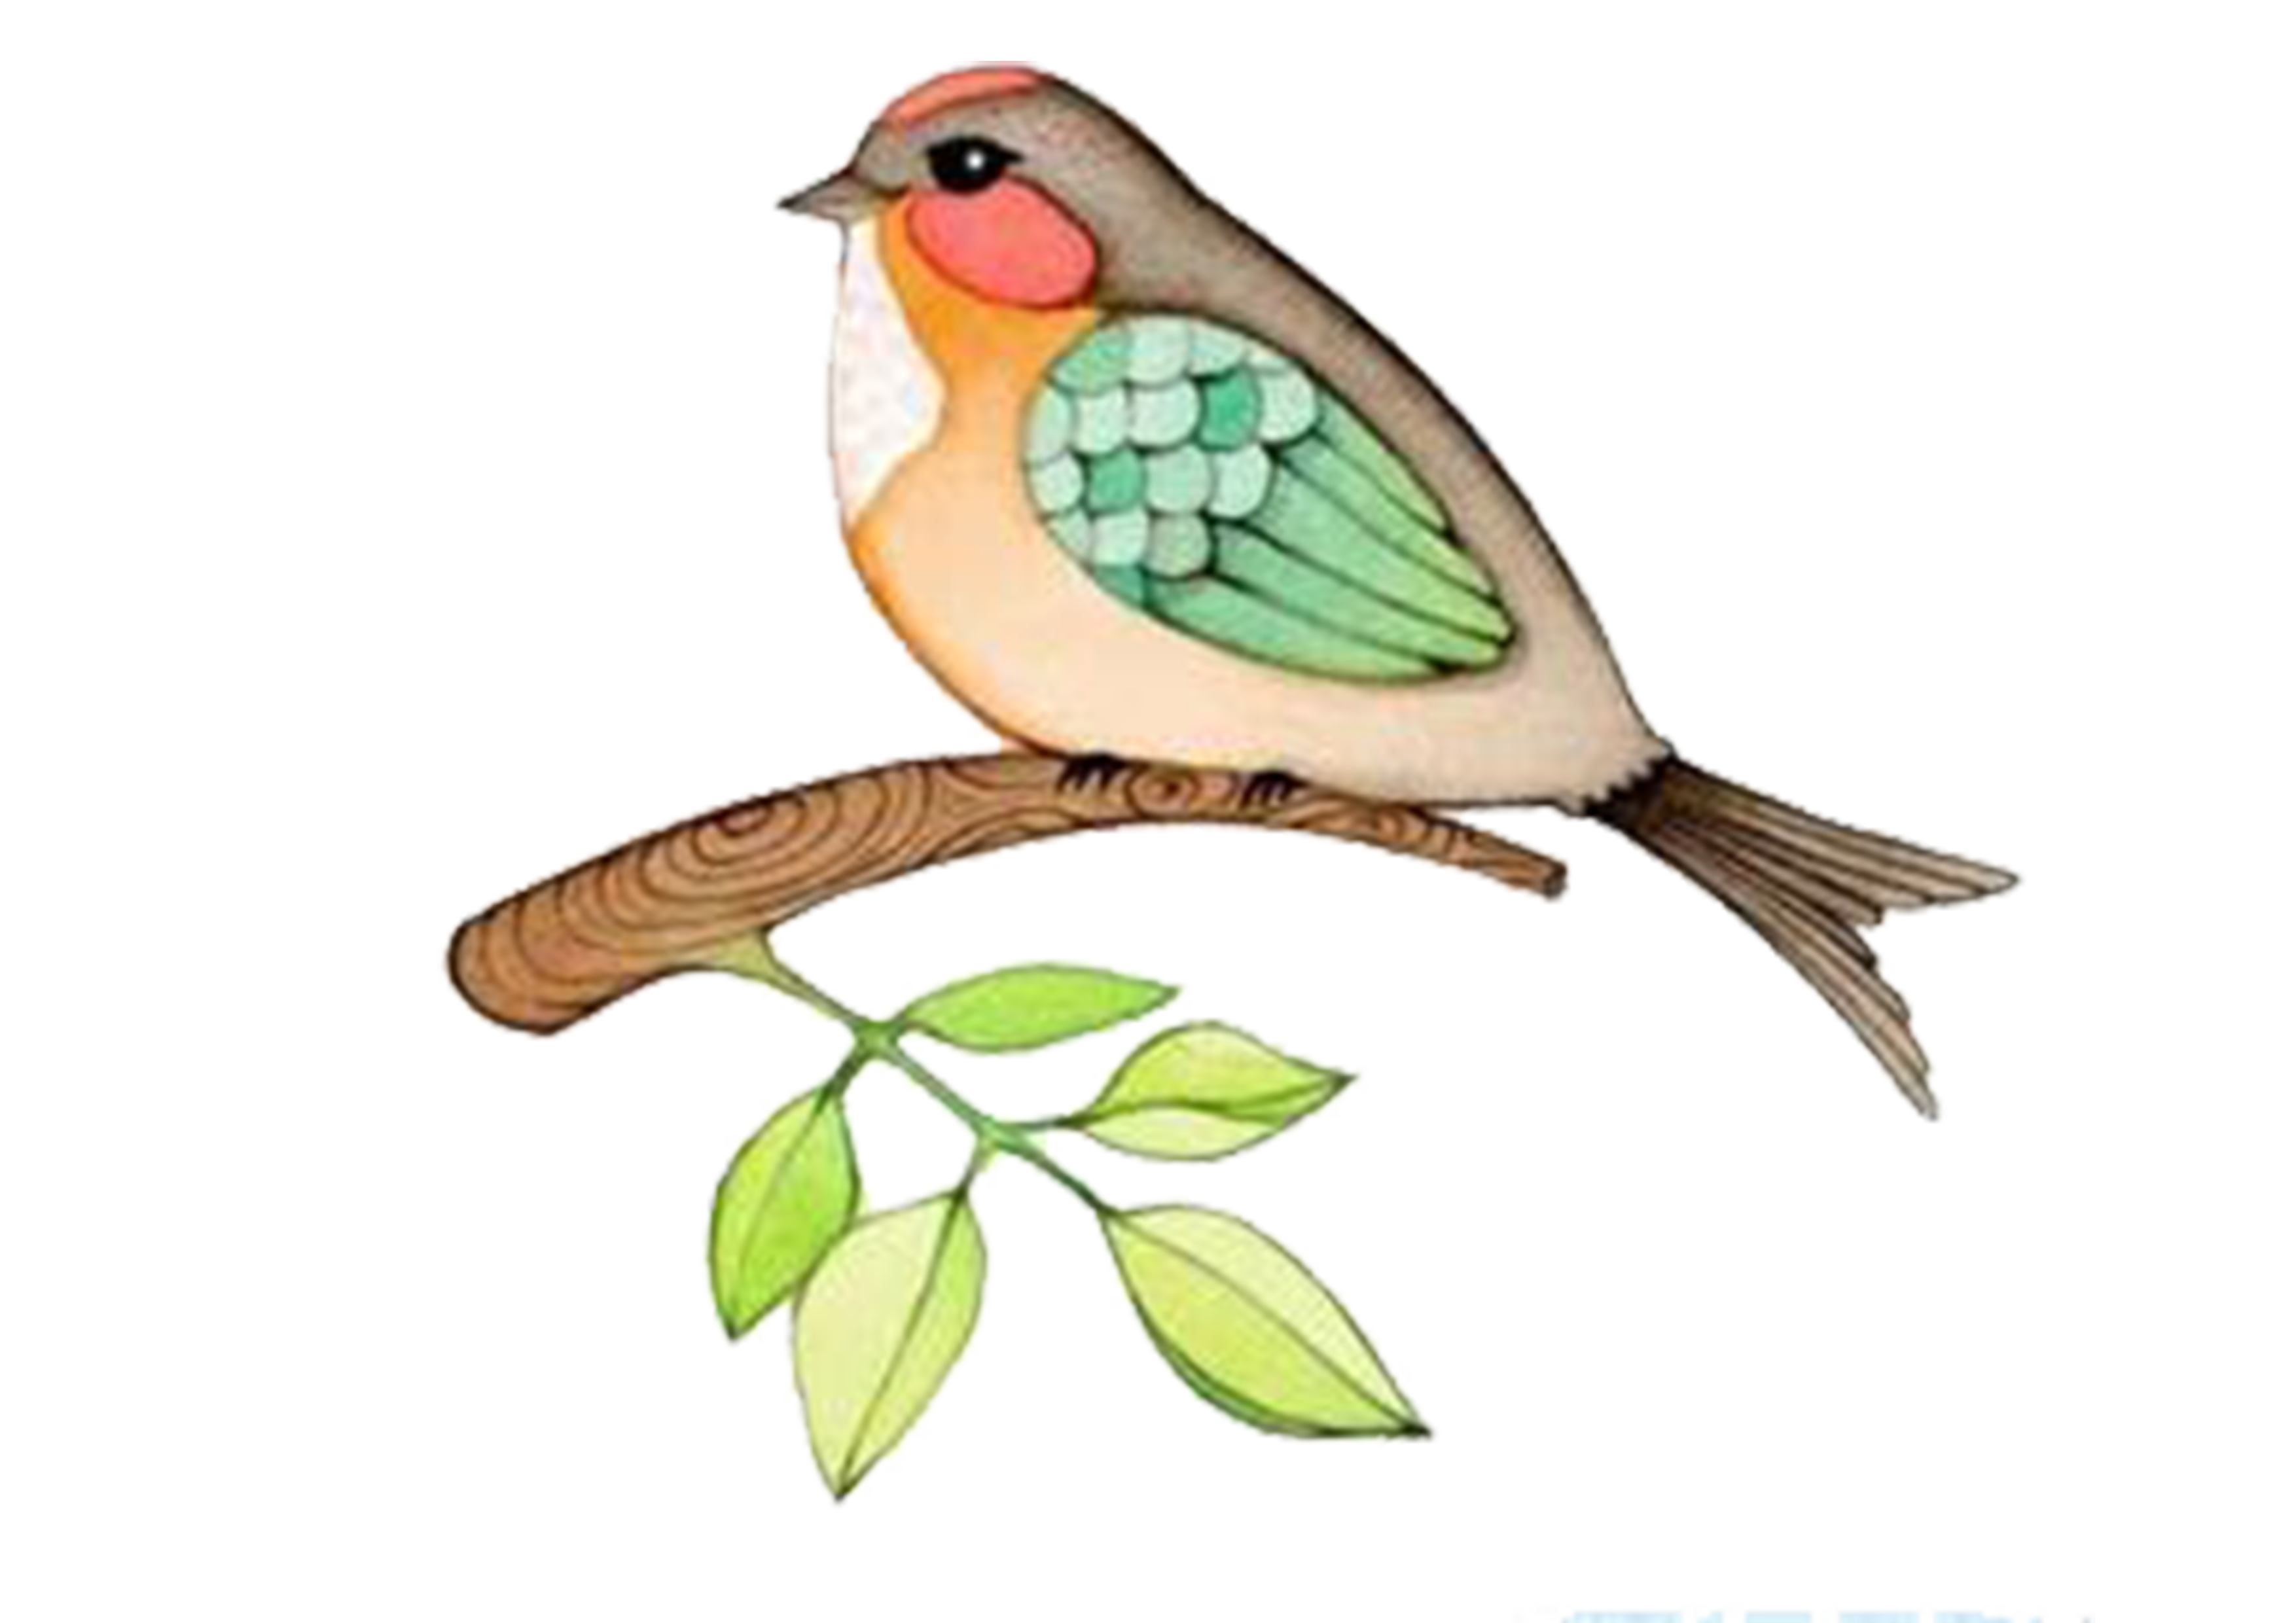 Bird watercolor painting drawing. Parrot clipart perico